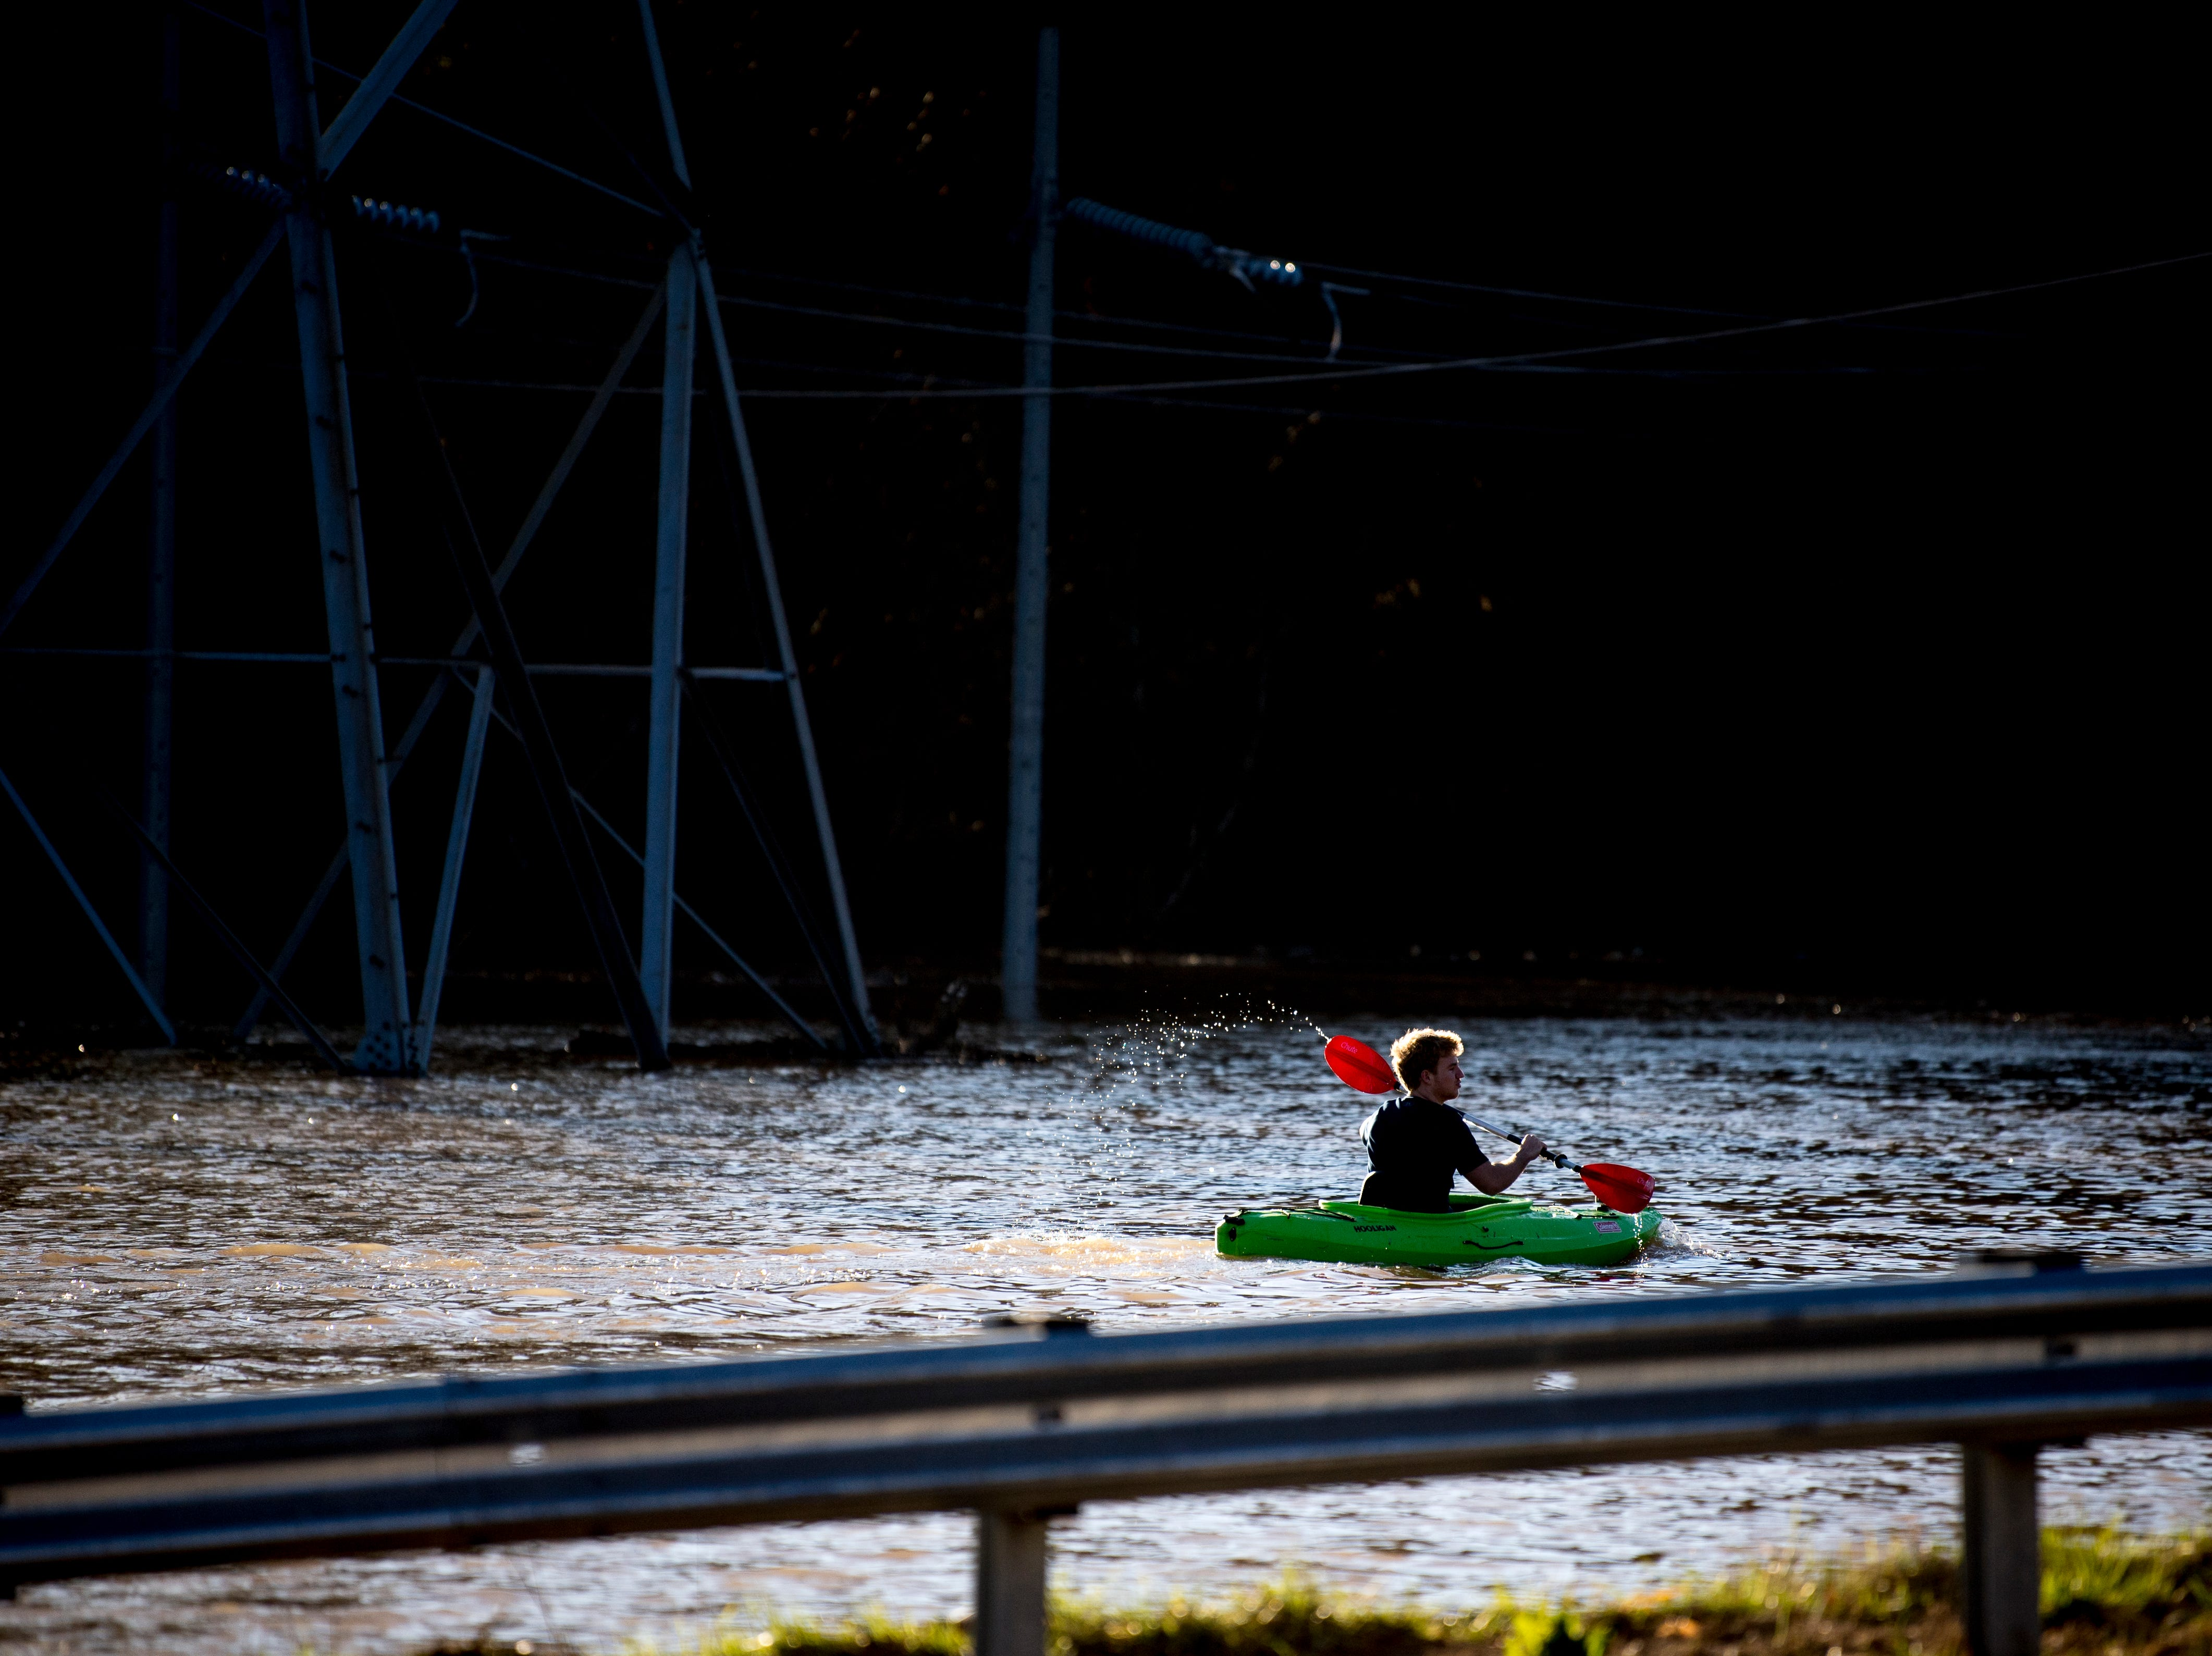 James Webster, of Knoxville, kayaks beneath power lines near the Sunoco on Ebenezer Road and Gleason Drive in Knoxville, Tennessee on Sunday, February 24, 2019.